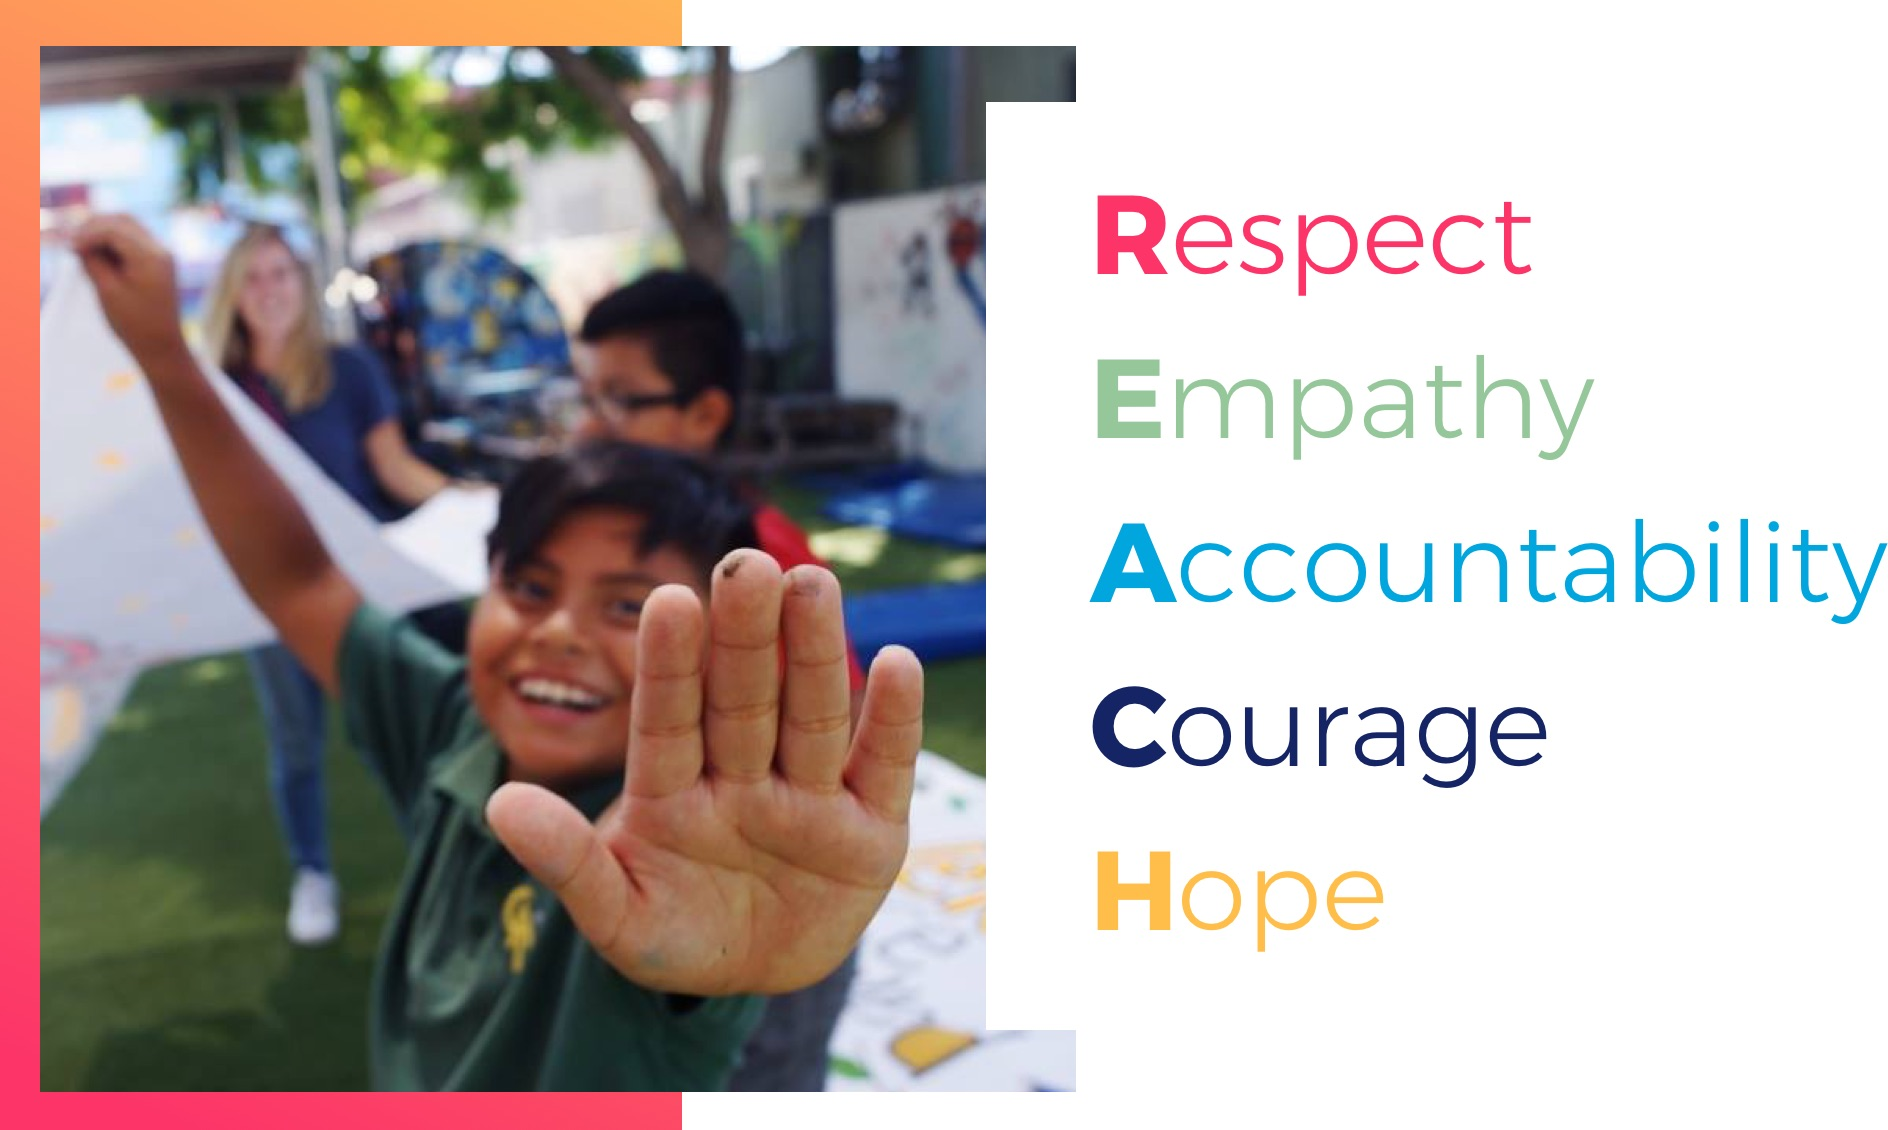 Respect Empathy Accountability Courage Hope